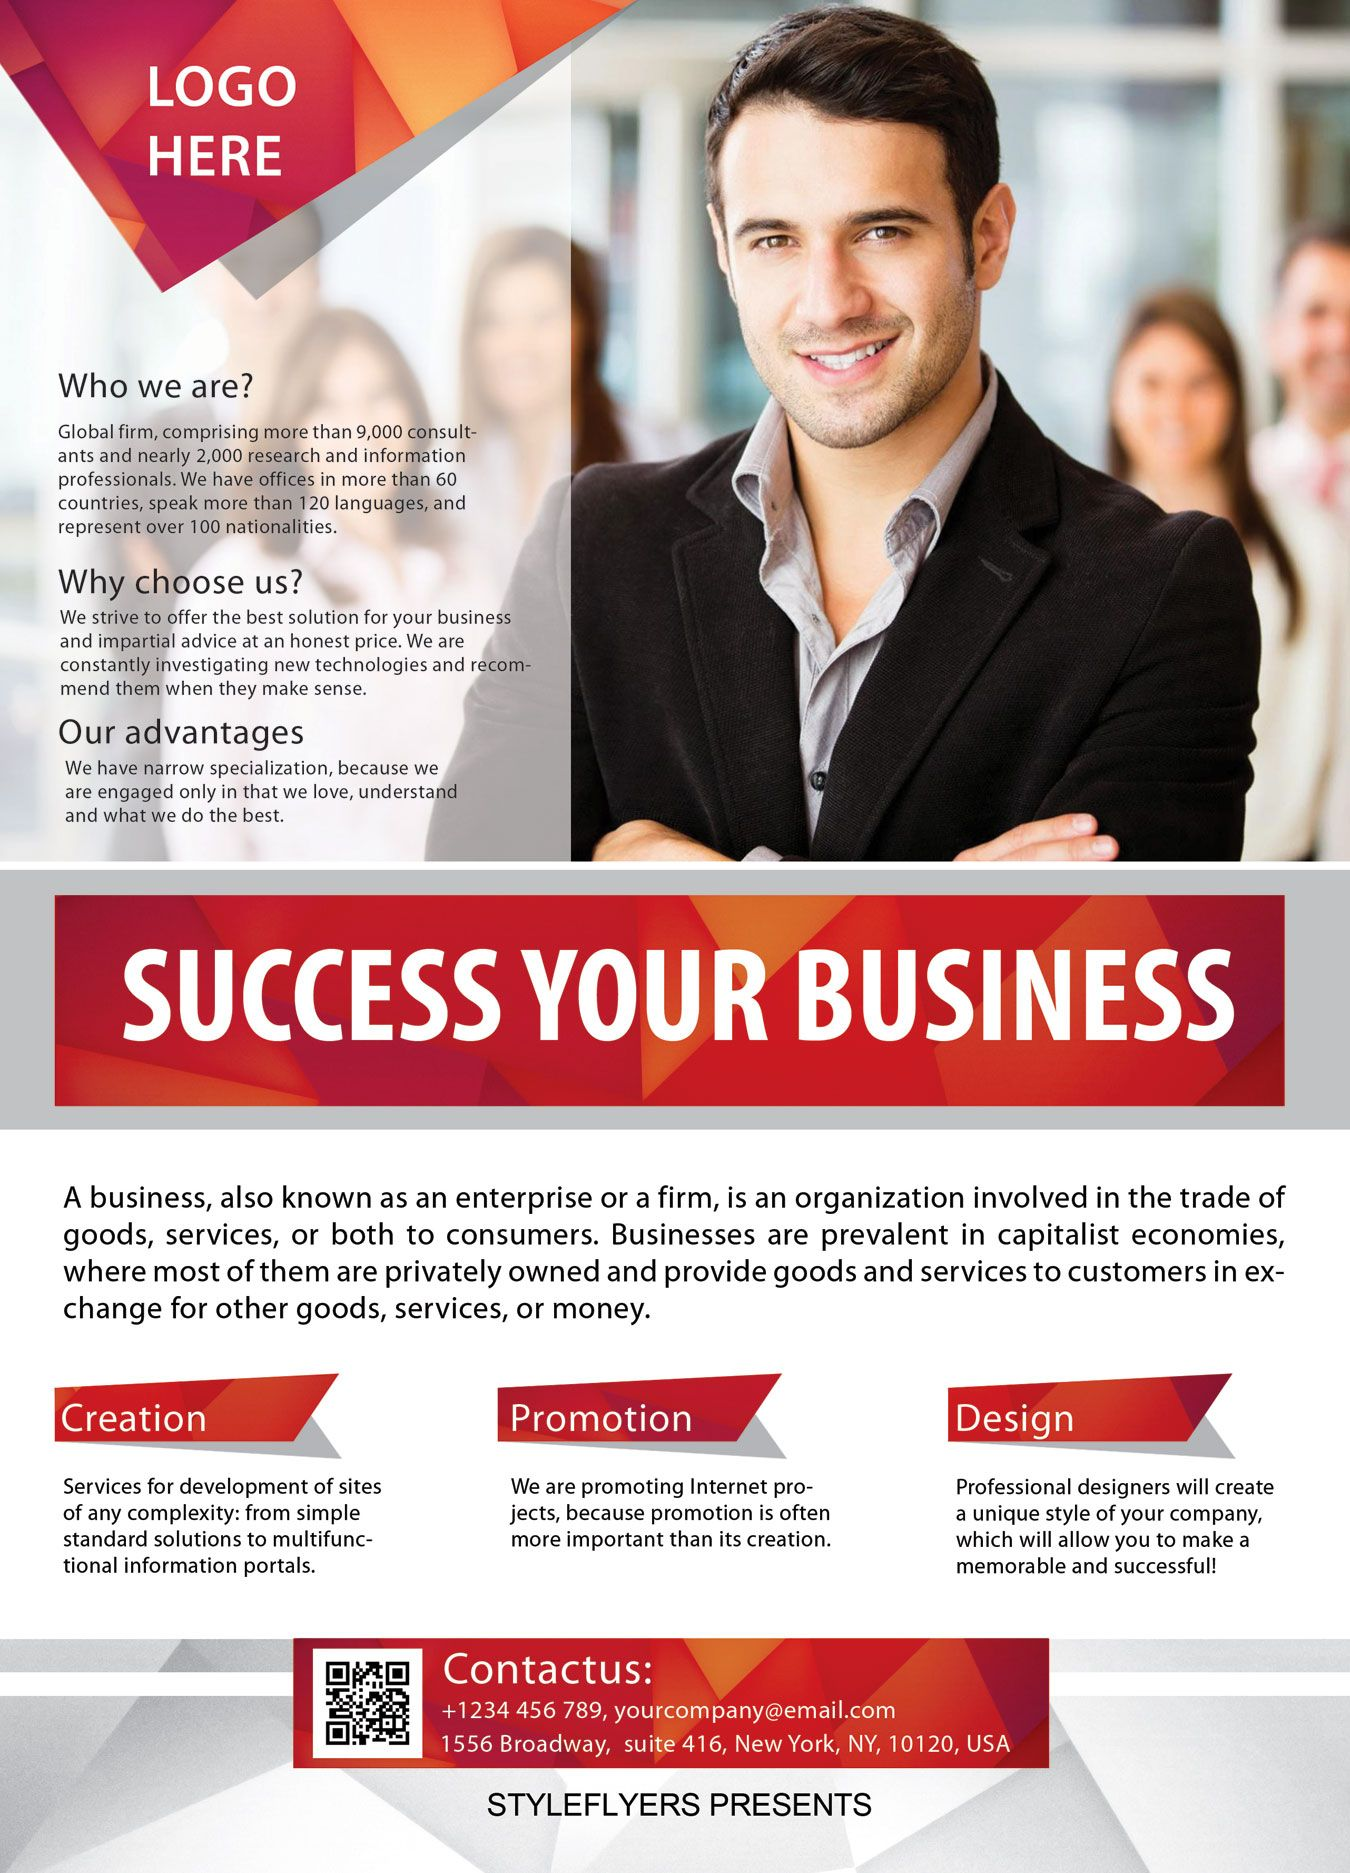 A4 business flyer template free download 2424 flyers pinterest great advertisement for your business training download it right now business training flashek Choice Image